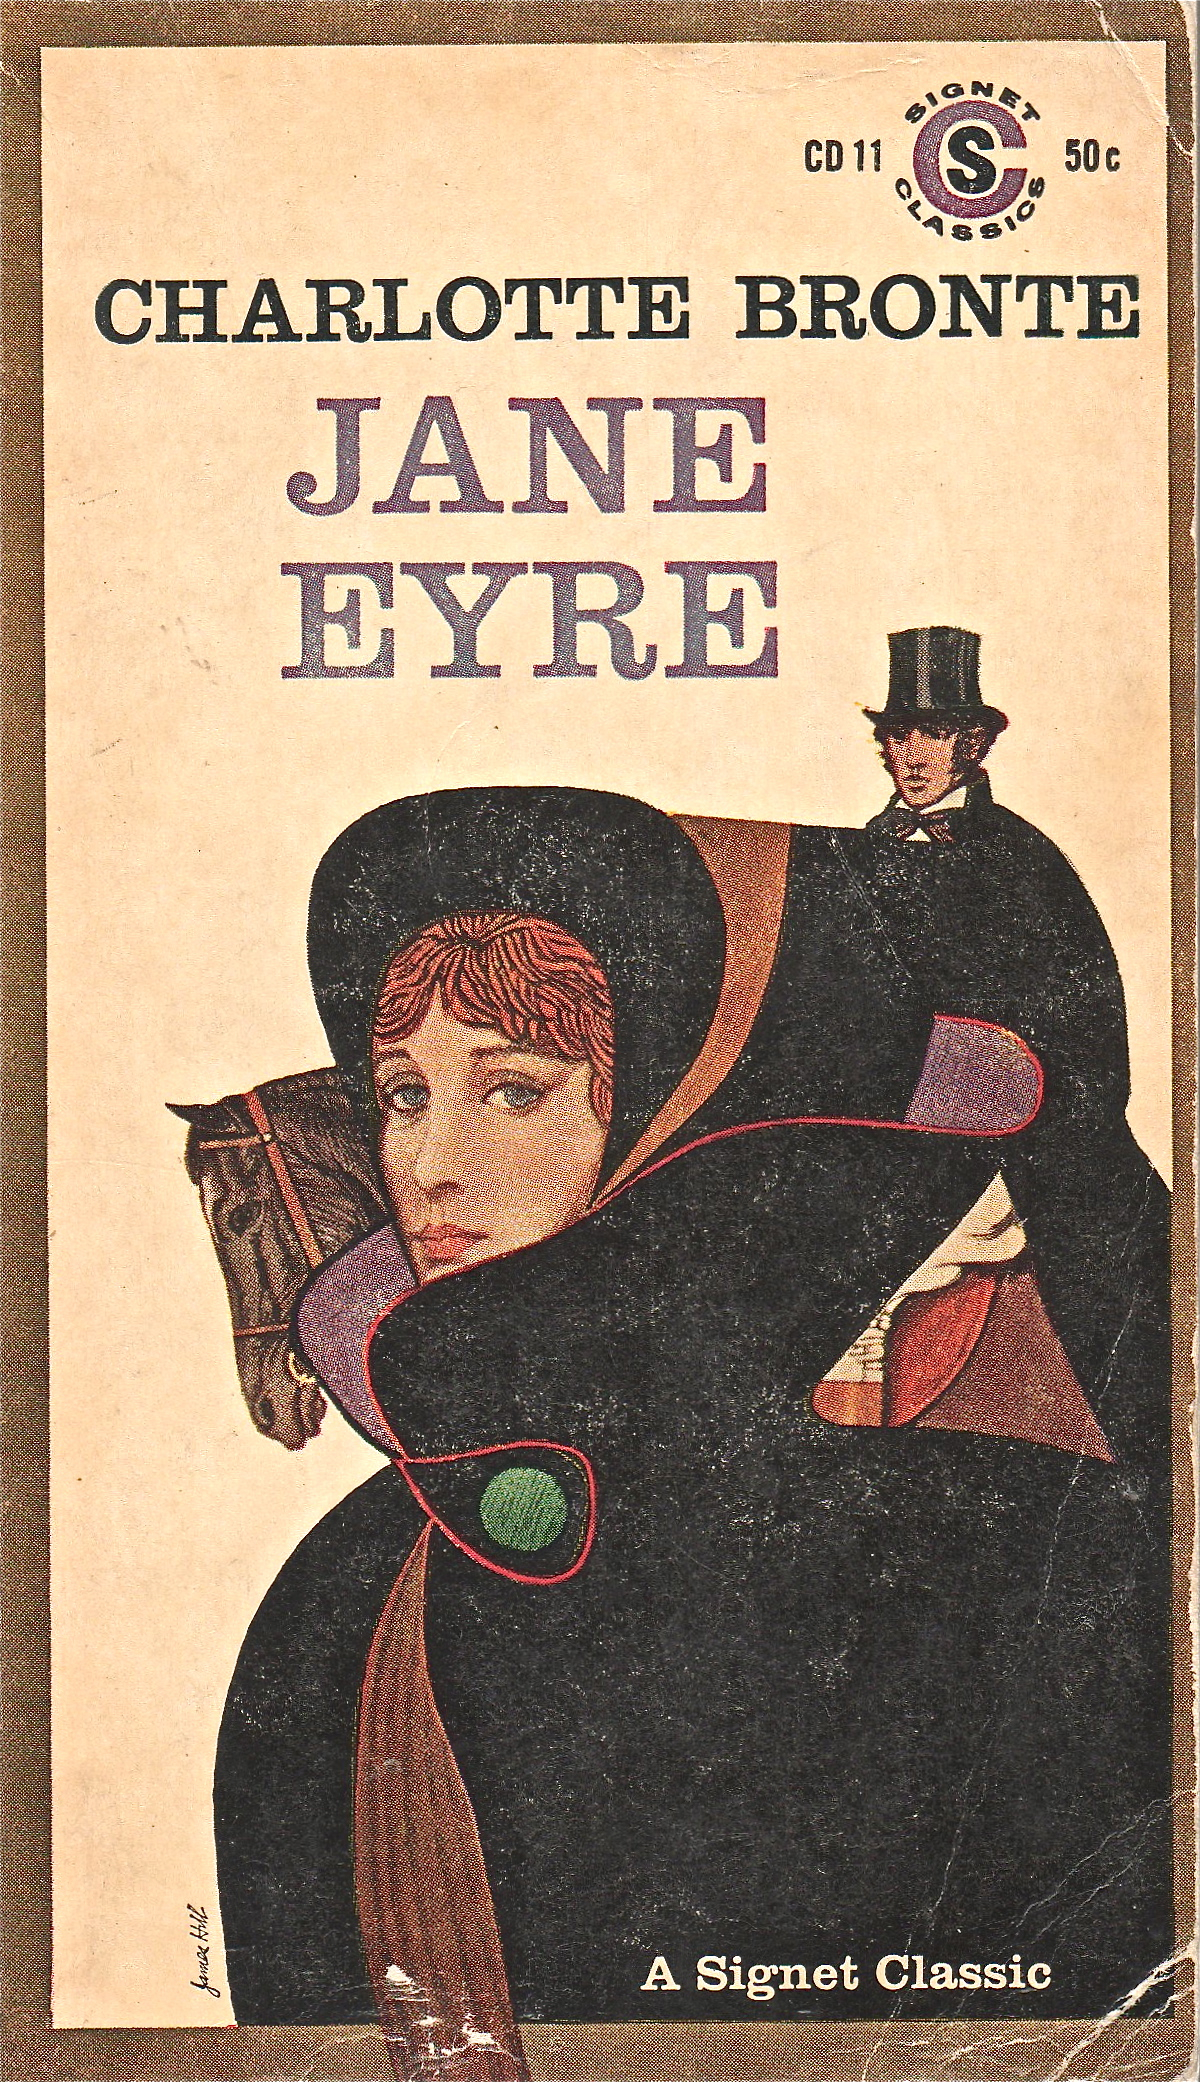 the insurmountable problems in jane eyre by charlotte bronte Jane eyre by charlotte bronte this was a real surprise to me i was searching for a quote from something else and there were enough word matches to place me smack dab in the middle of an html version of jane eyre.